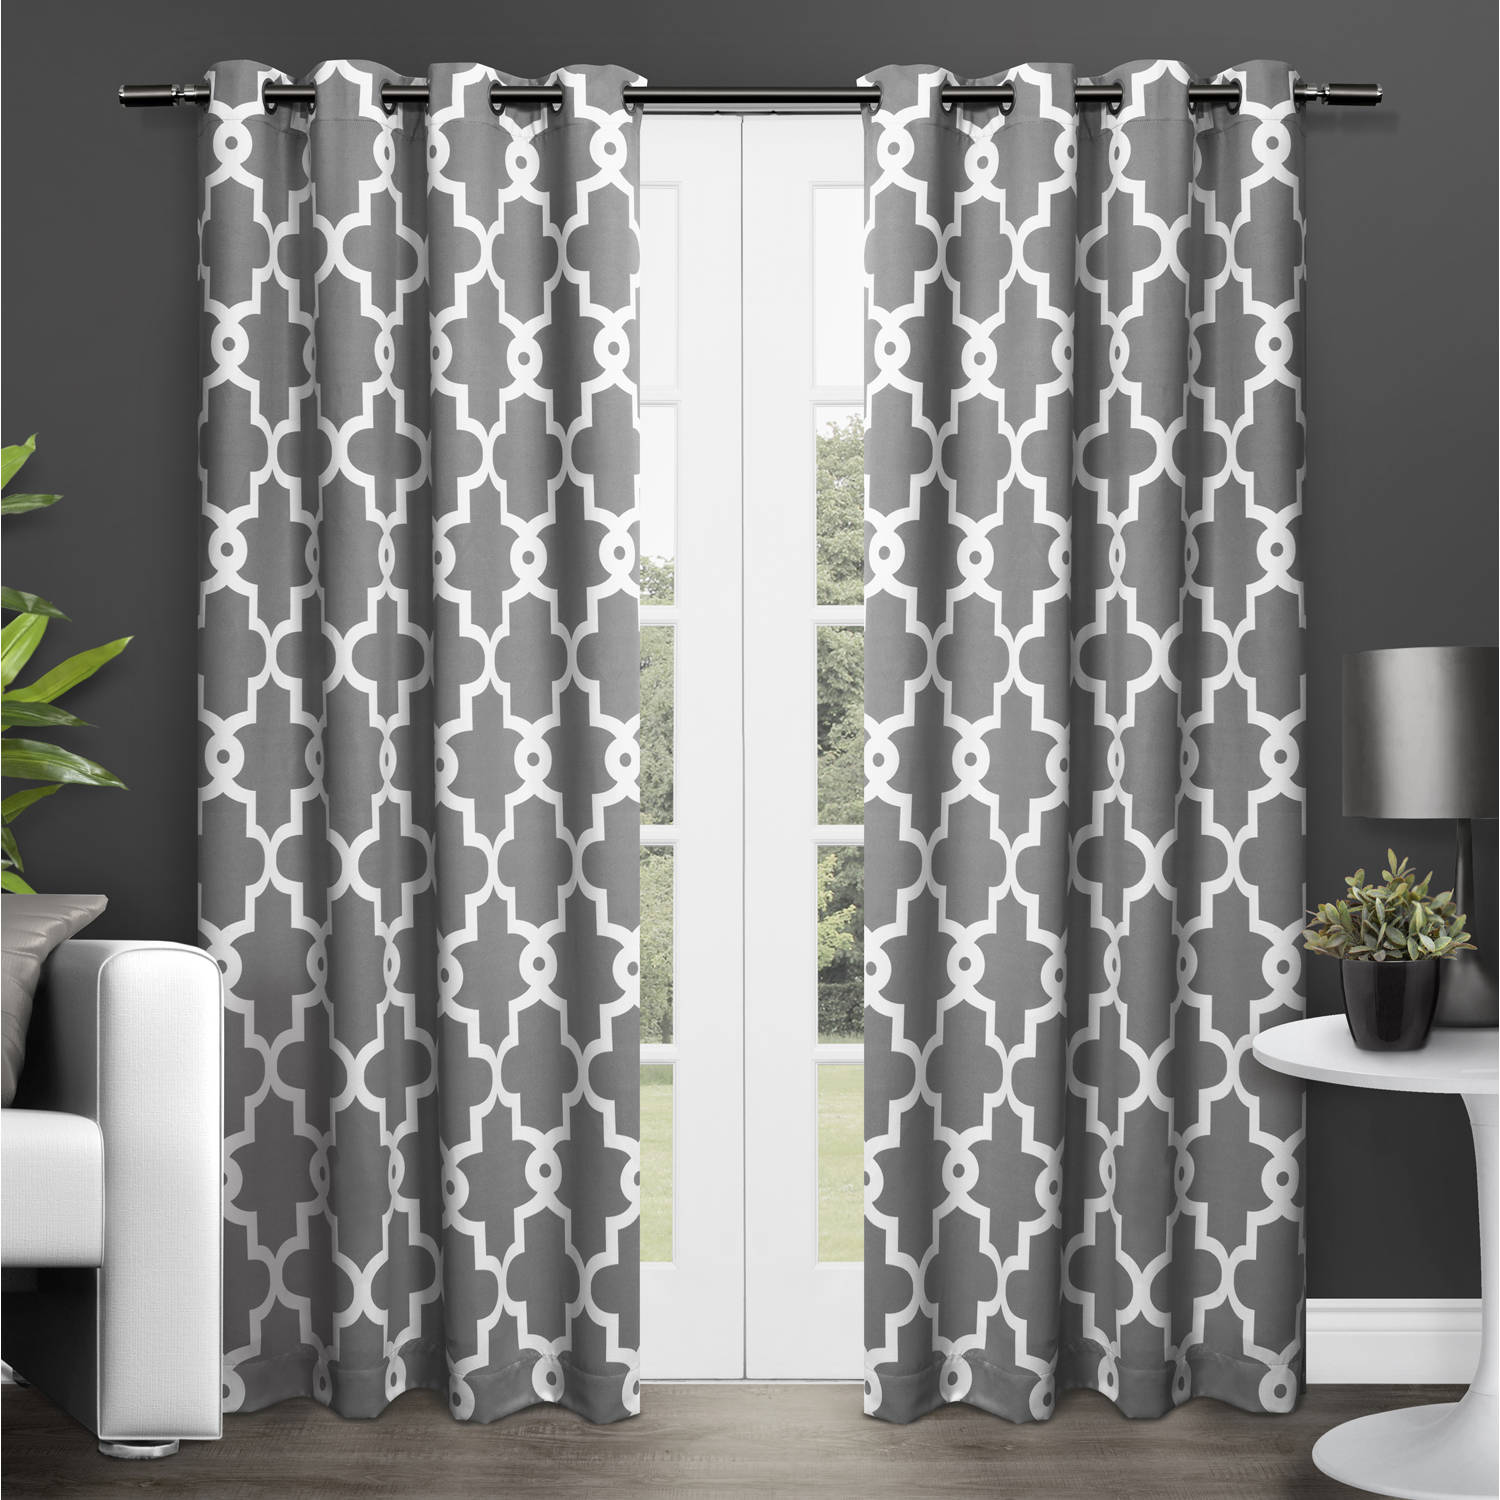 "Exclusive Home Ironwork Blackout Thermal Grommet Top Window Curtain Panels, 52"" x 84"", Black Pearl, Set of 2"